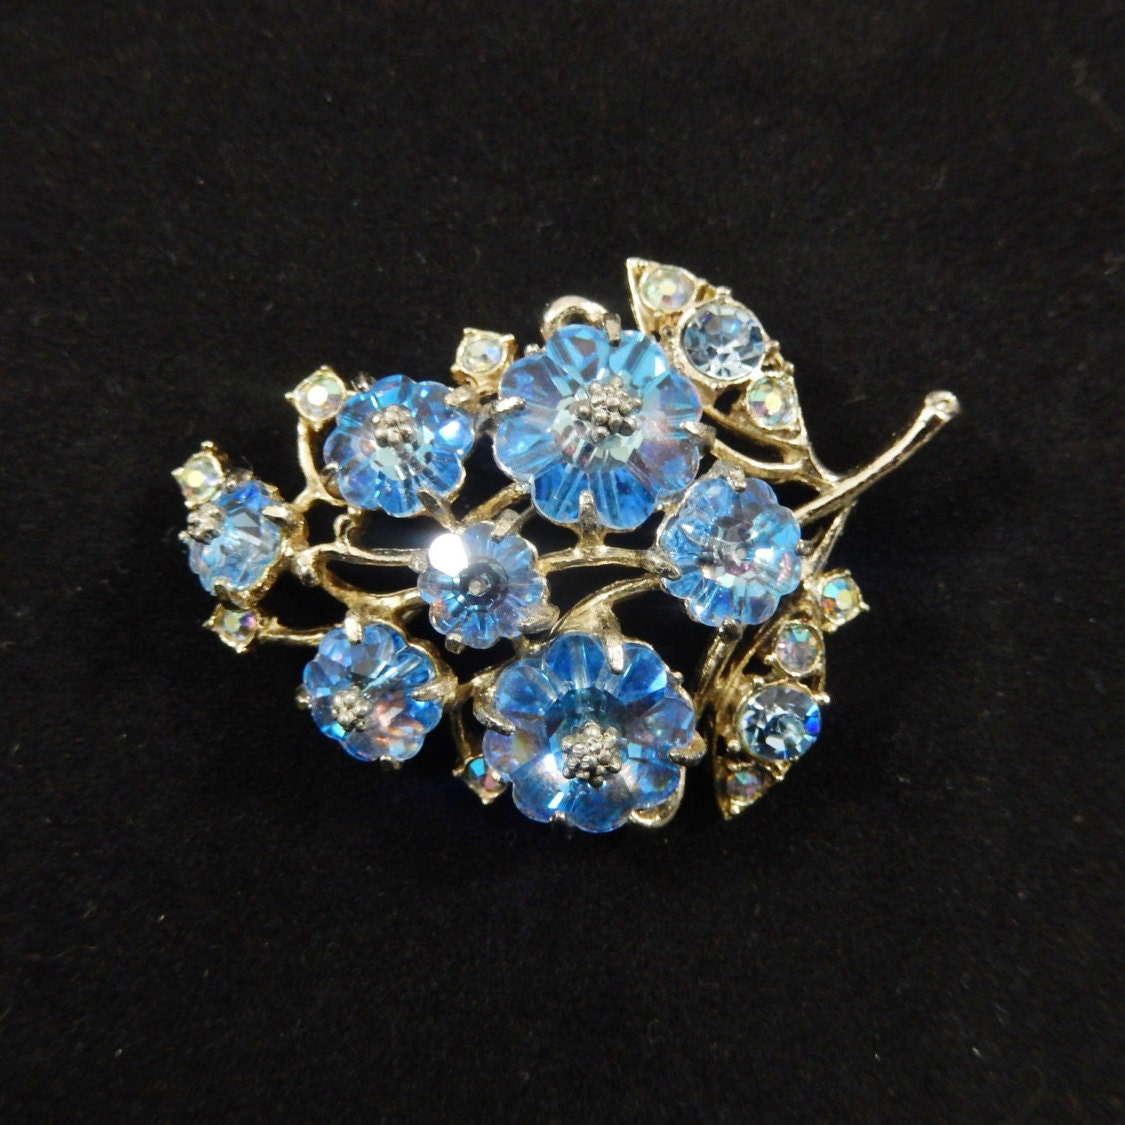 Vintage Capri Blue Margarita Flower and Rhinestone Brooch